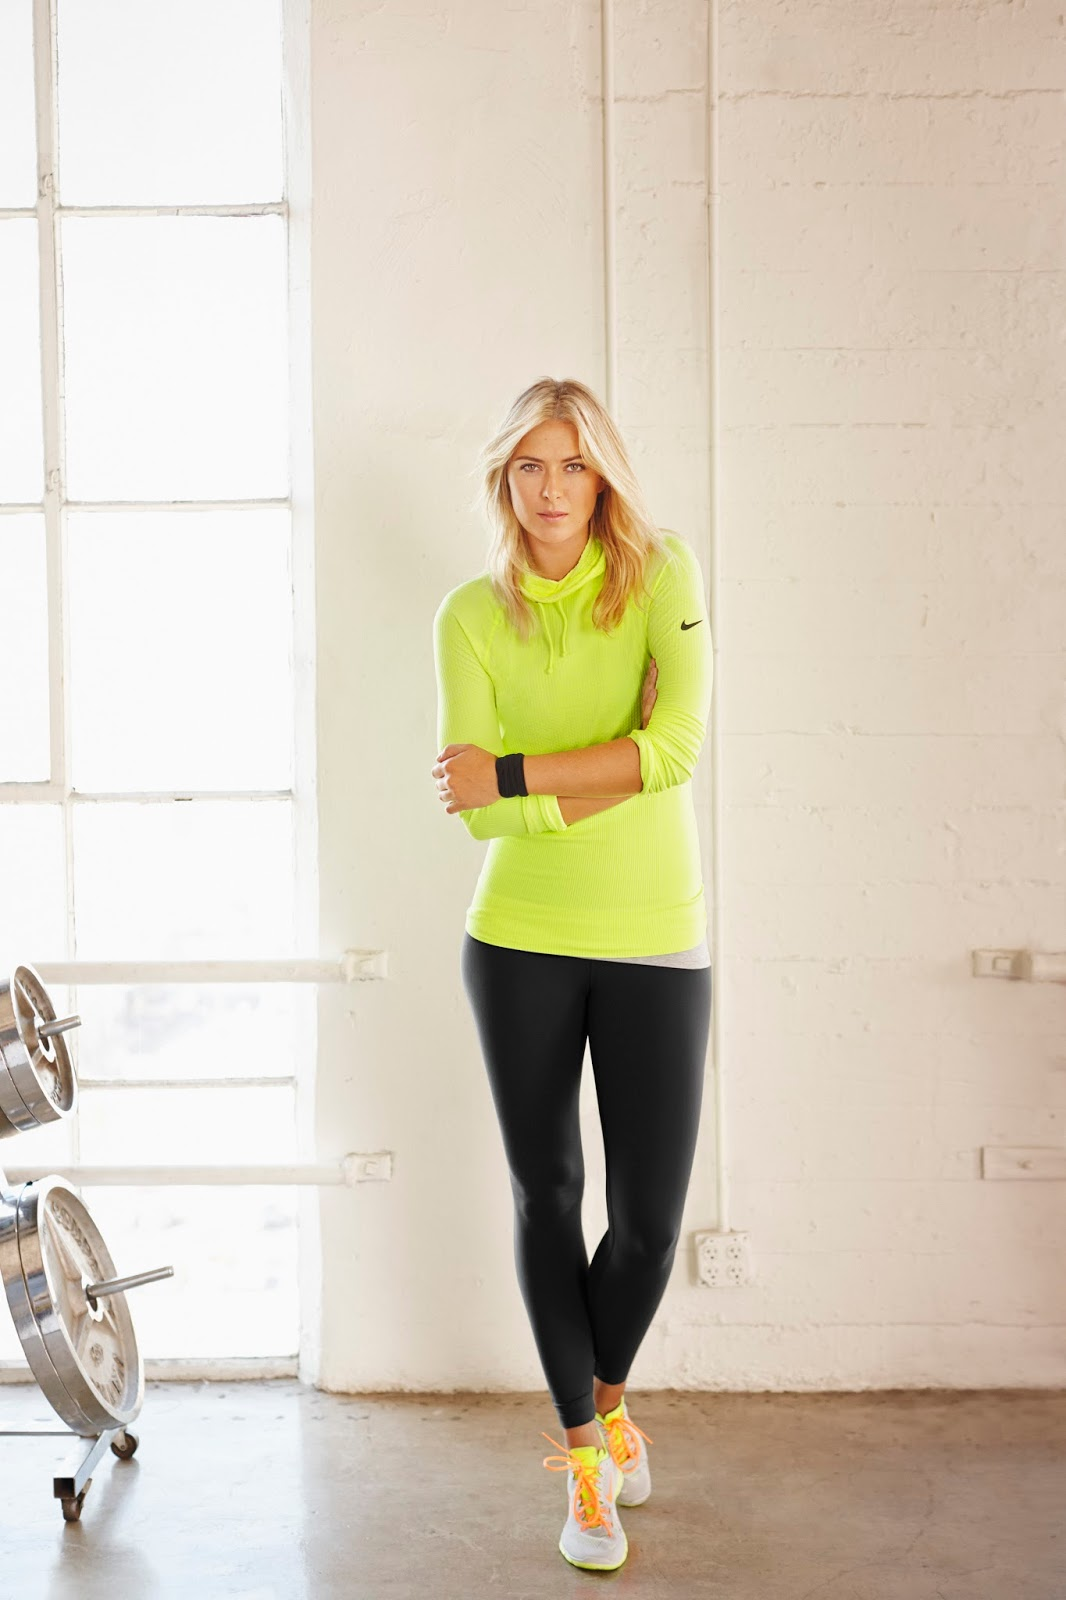 New Year S Crush Workout On The N Tc App Designed By Yutaka Nakamura Sharapova Strength And Conditioning Coach Features Exercises